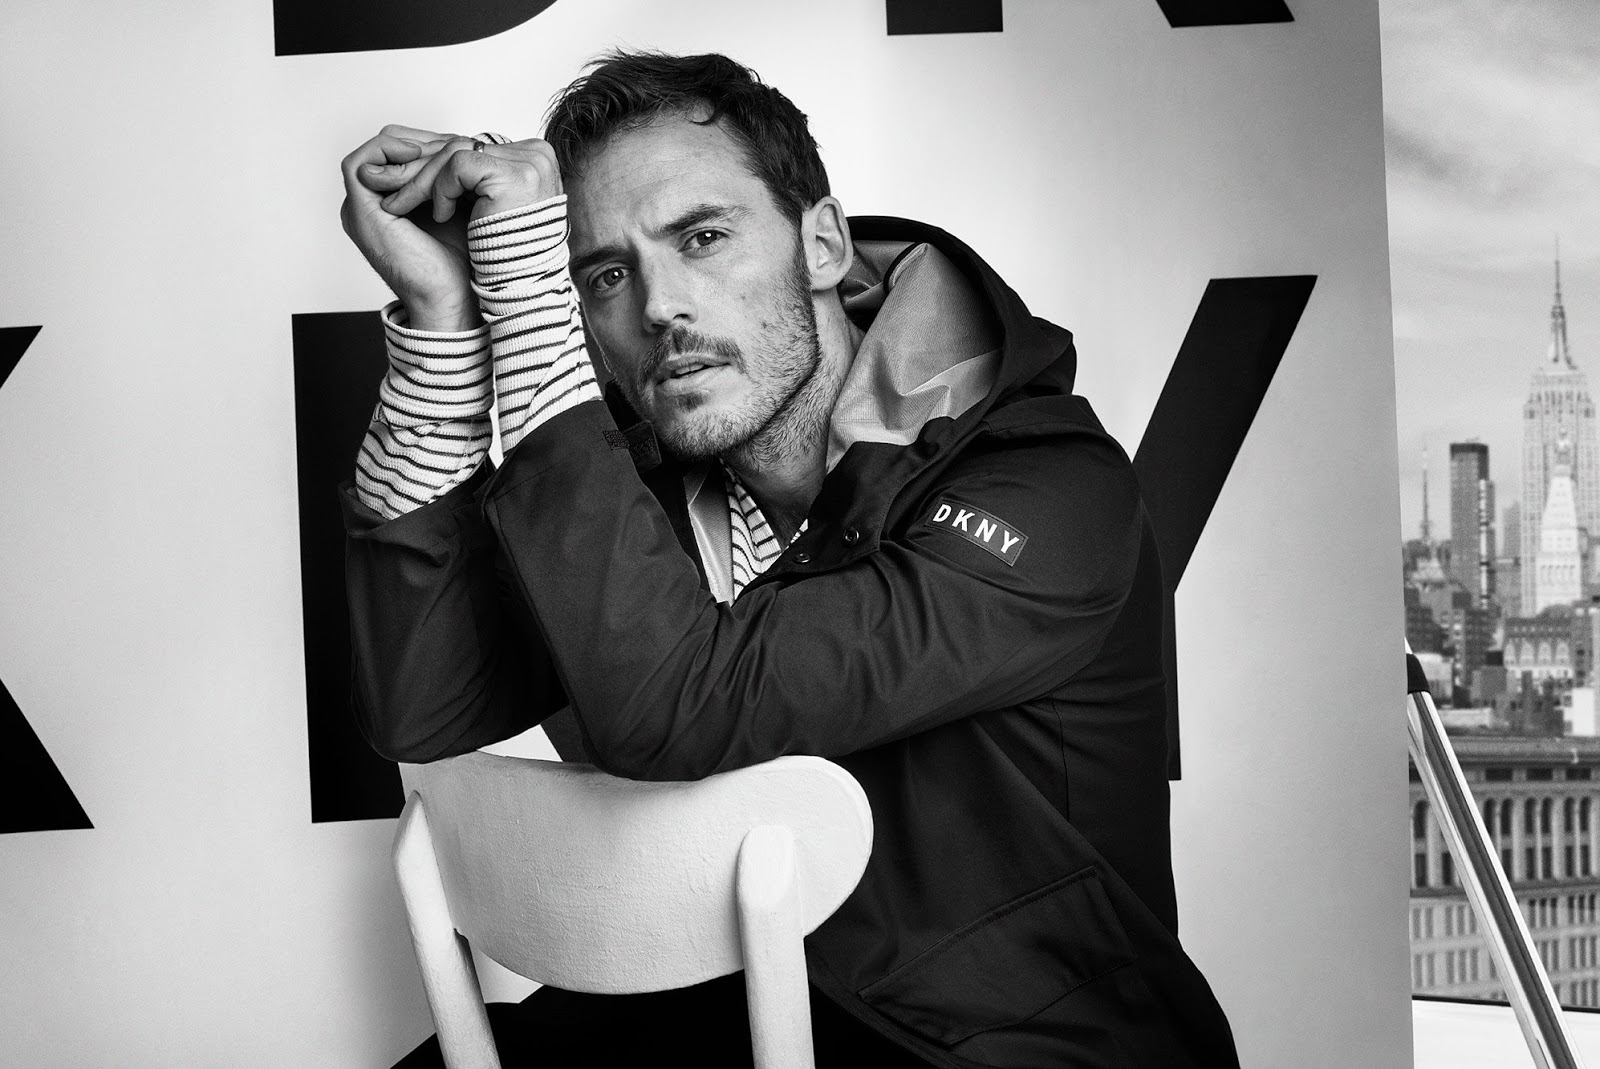 DKNY SS 2018 Men's Campaign ft. Sam Claflin